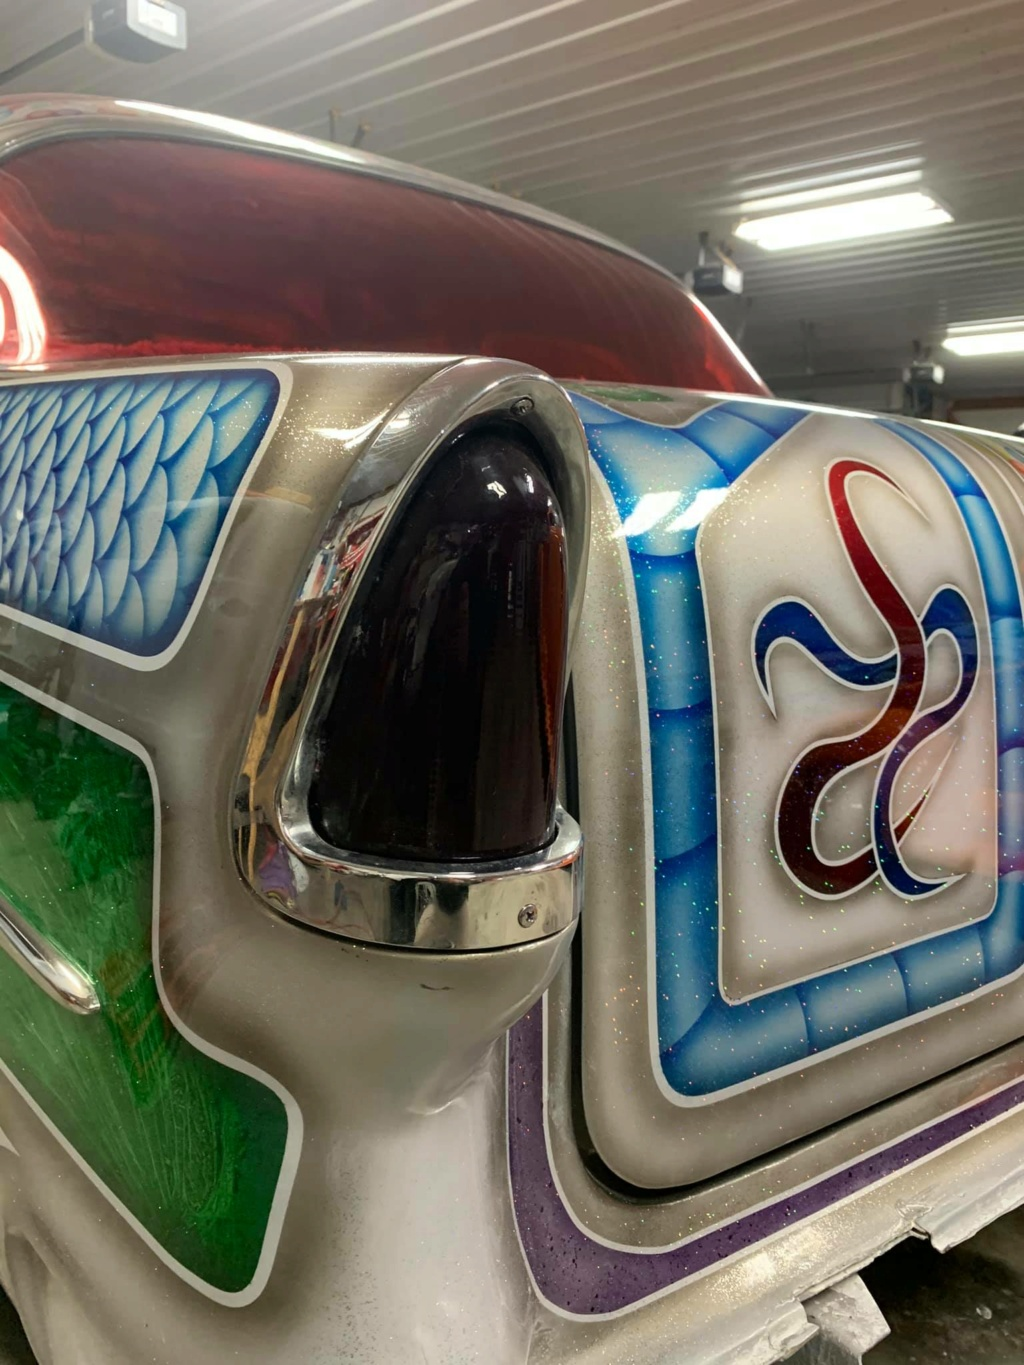 Ronnie N Kristina Jones - 1955 Chevrolet Gasser sixties look with flake, panneling, lace painting 15738610